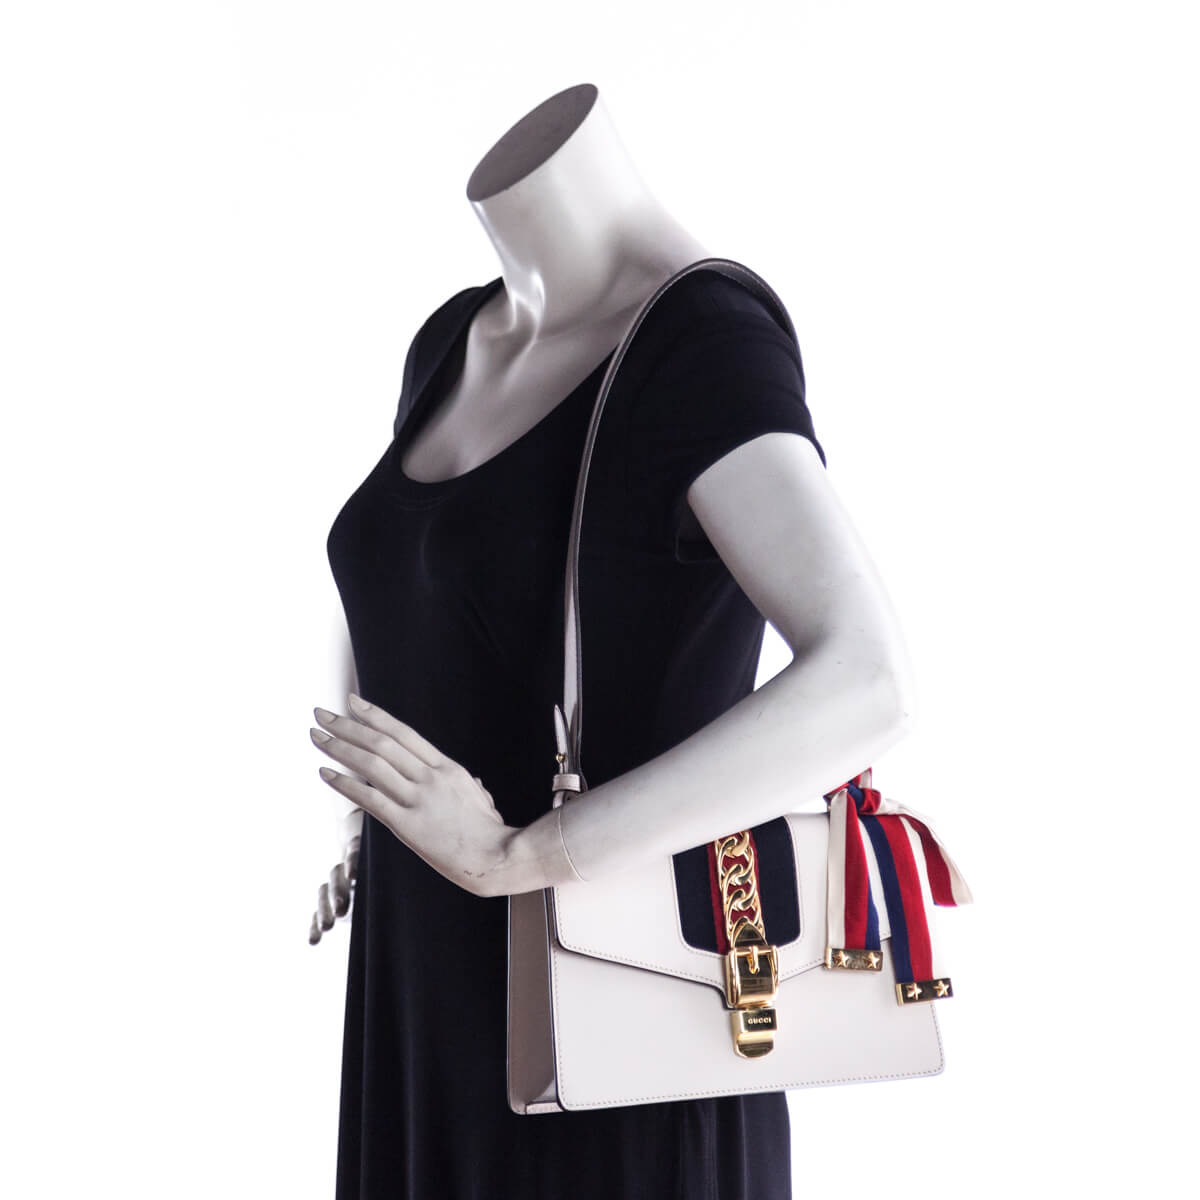 ... Gucci Small White Sylvie Shoulder Bag - LOVE that BAG - Preowned  Authentic Designer Handbags 02119cb63af90